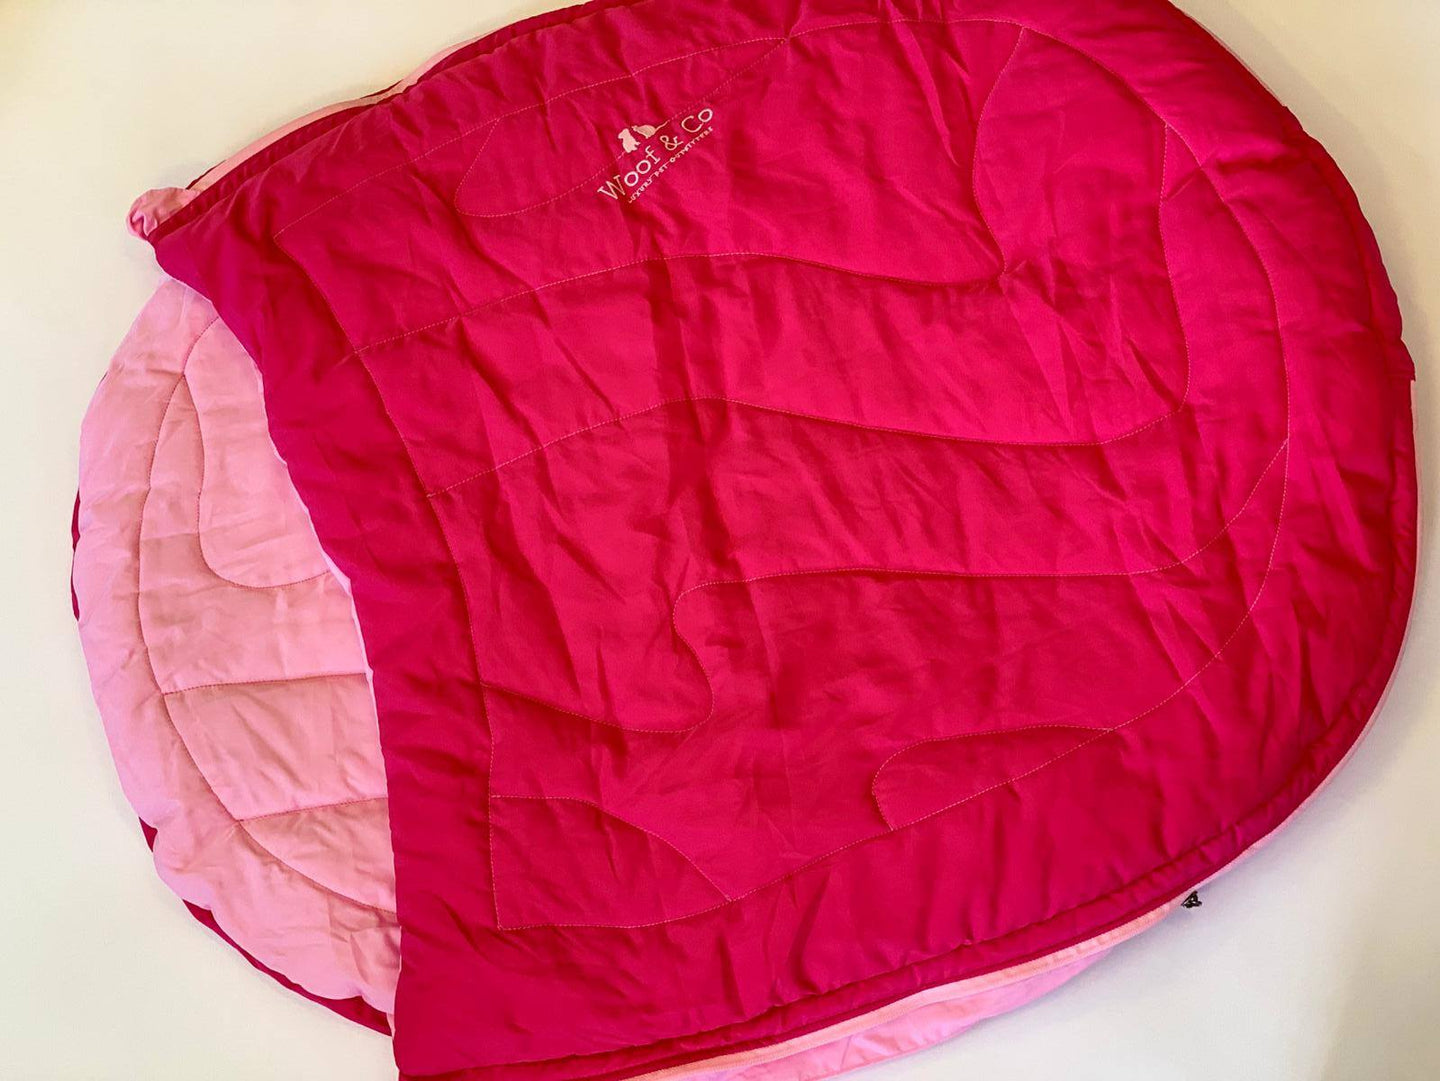 Pink Doggy Sleeping Bags